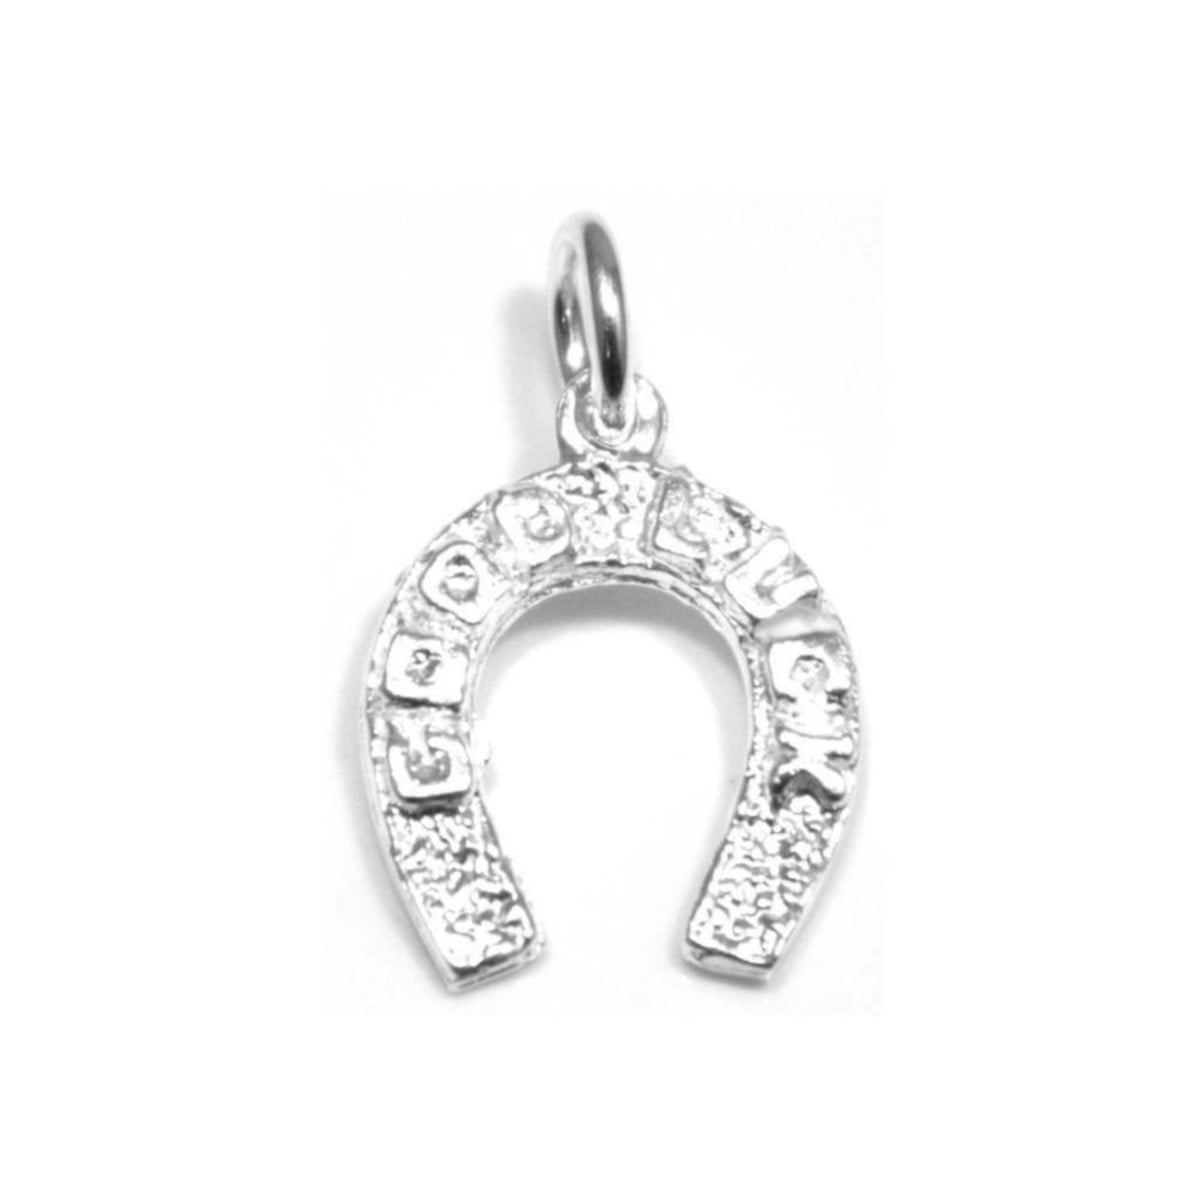 925 sterling silver good luck horseshoe pendant charm